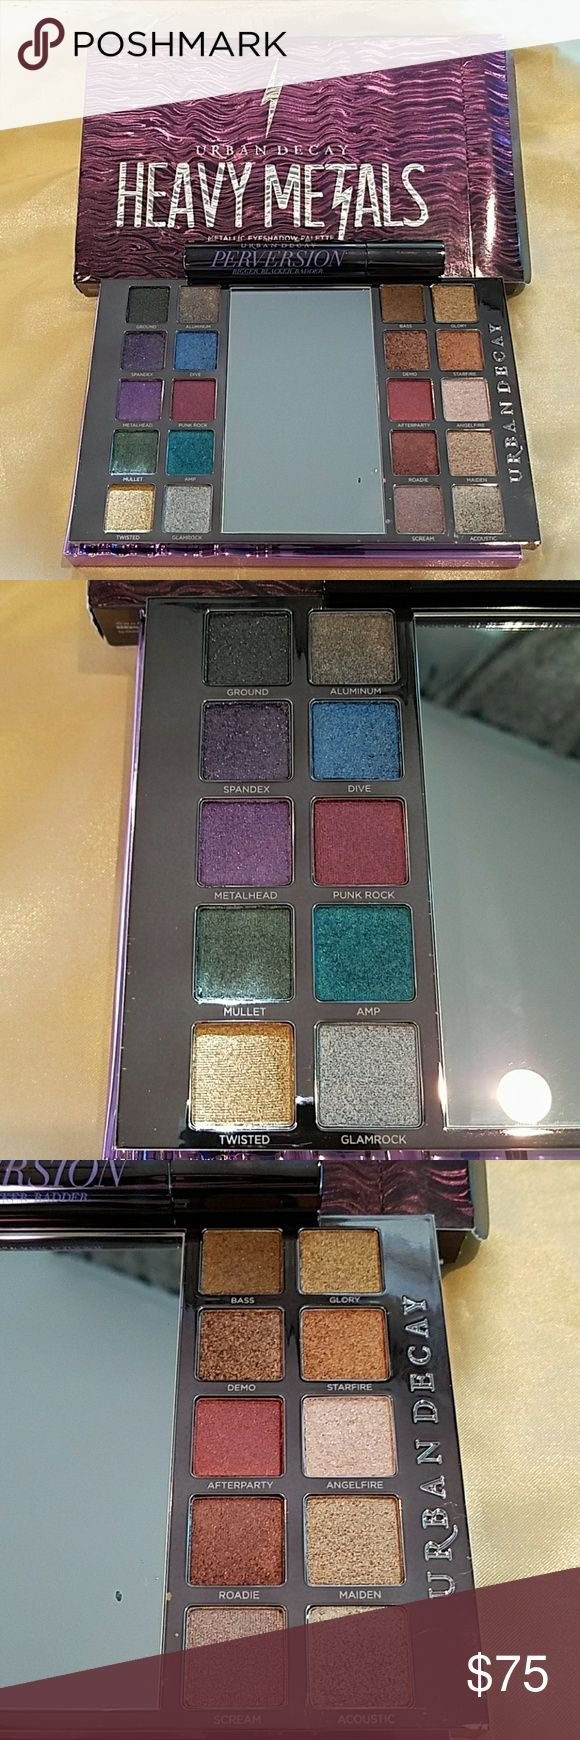 Urban Decay Heavy Metals Eyeshadow Palette Bundle A gorgeous collection of jewel toned metallic eyeshadows. Buttery with gorgeous payout. A very limited holiday edition now sold out everywhere ($60). You will love these colors year round! Bundled with a full size,  NWOB Perversion mascara ($24). Urban Decay Makeup Eyeshadow